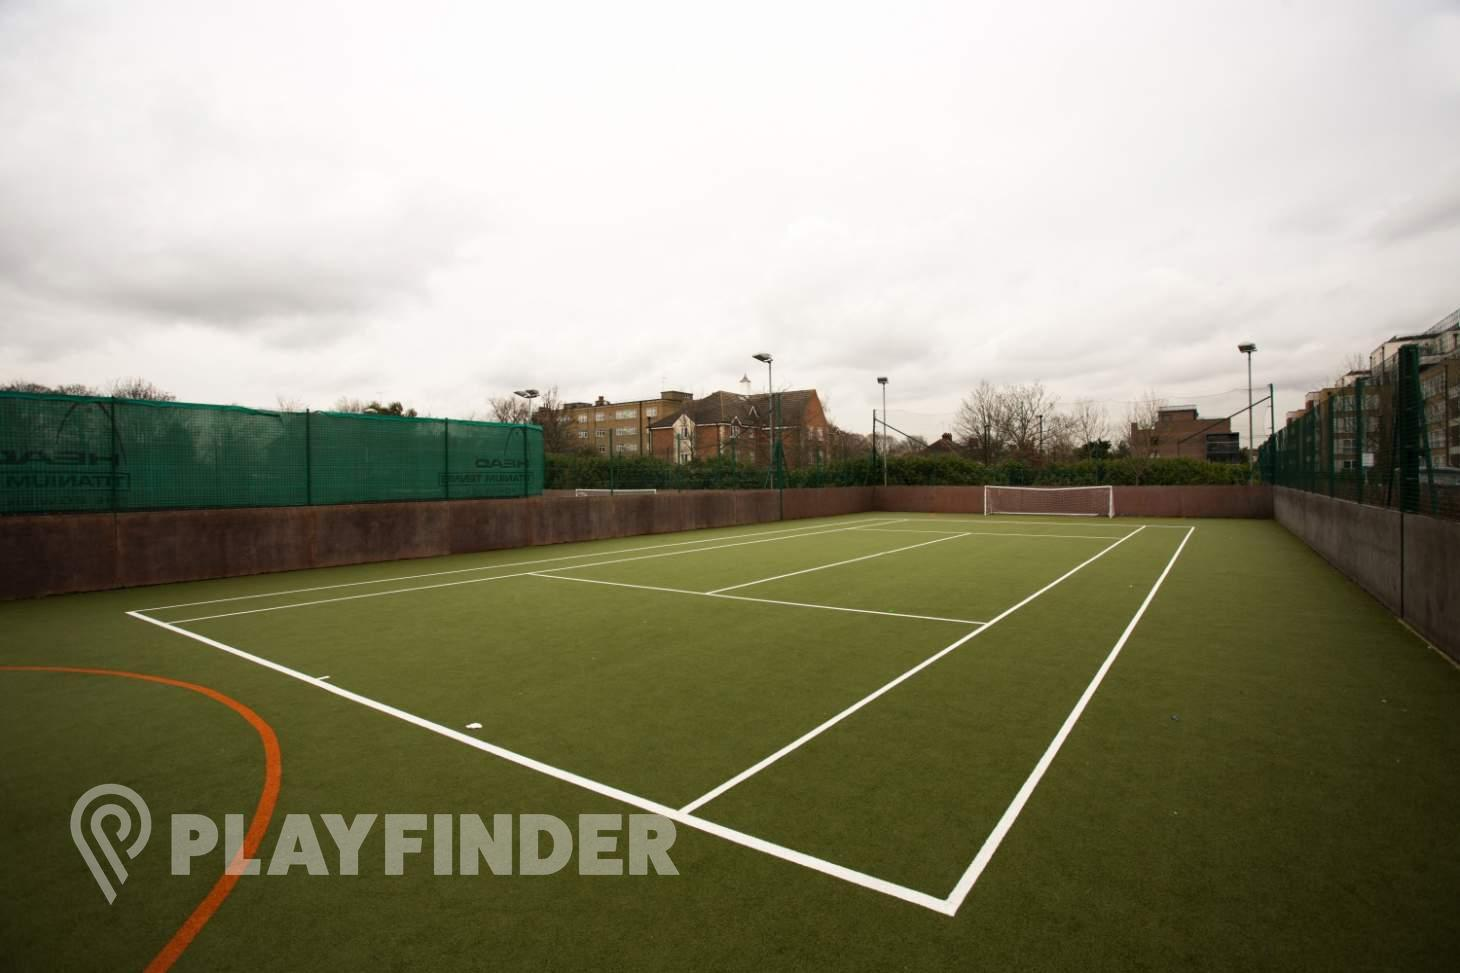 V Sports 5 a side | 3G Astroturf football pitch